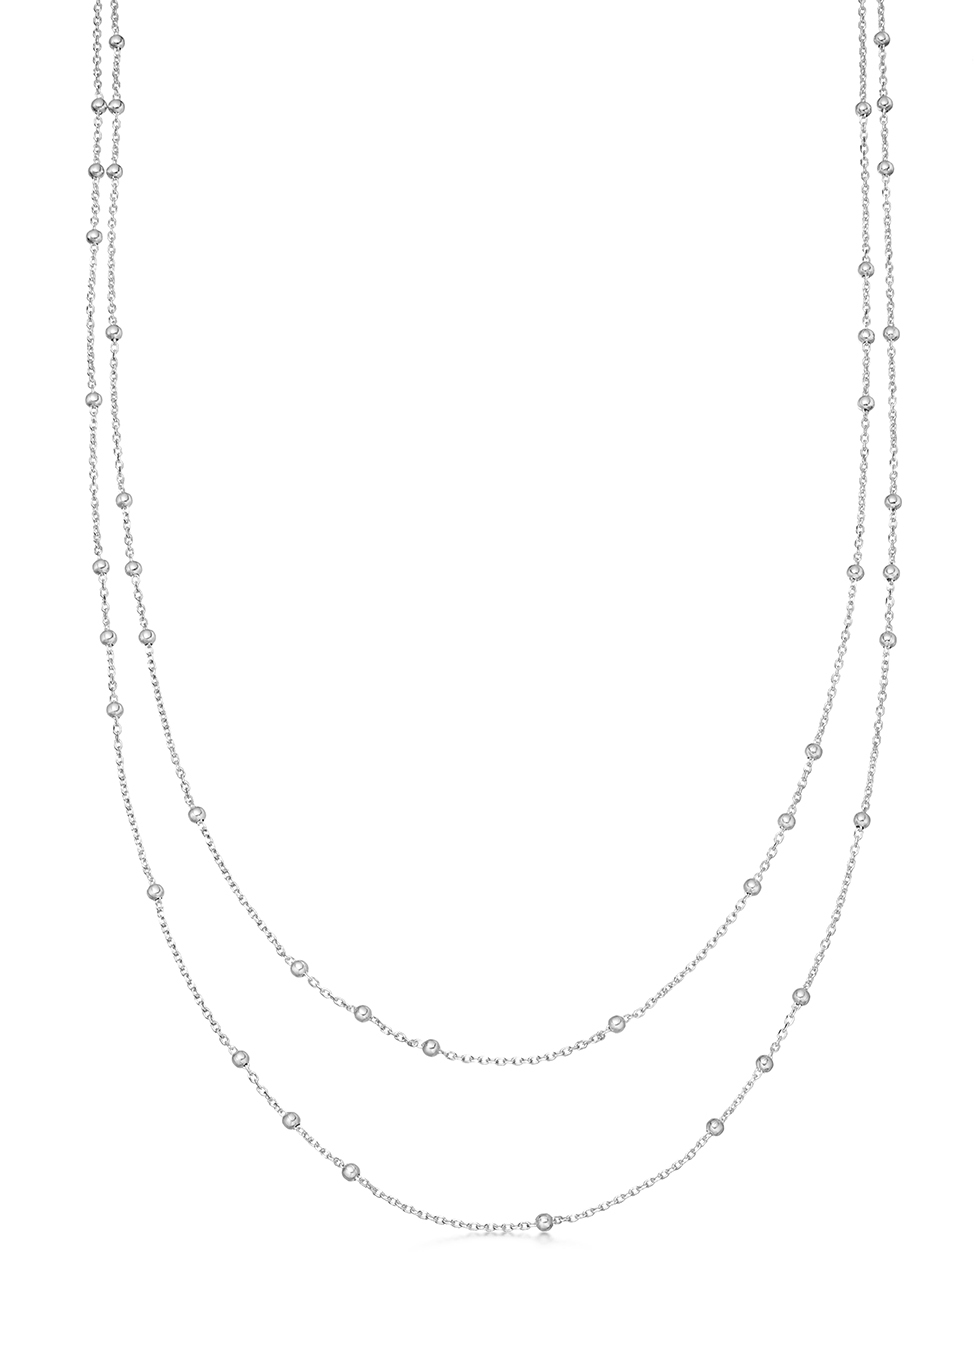 Double Chain sterling silver necklace